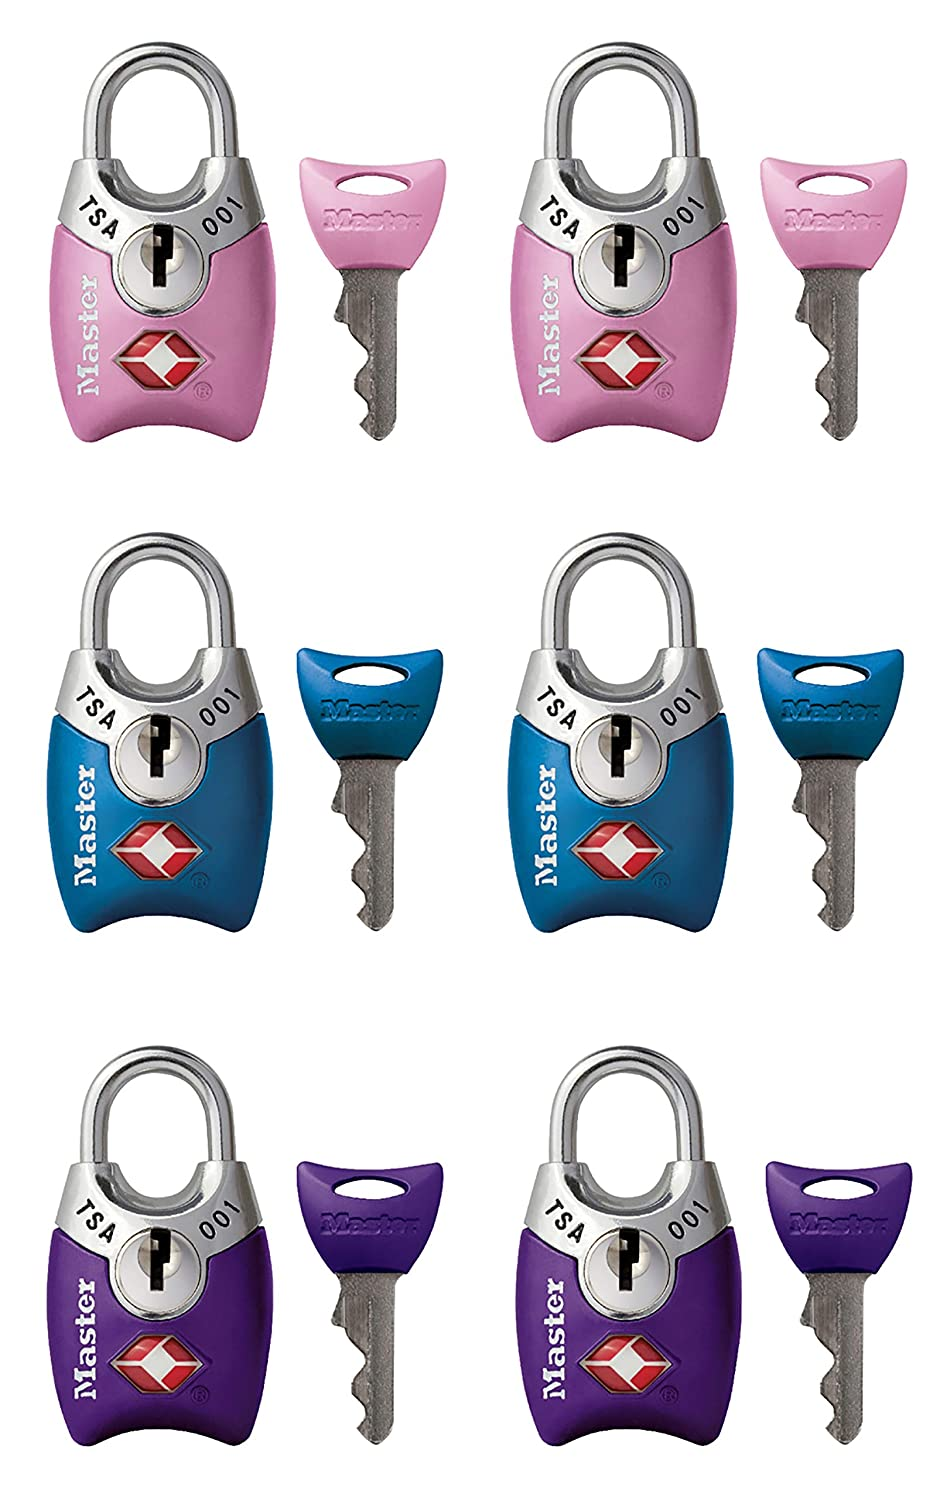 4689T Keyed TSA-Accepted Luggage Lock Pack of 2 Wide Master Lock Padlock Assorted Colors 1 in